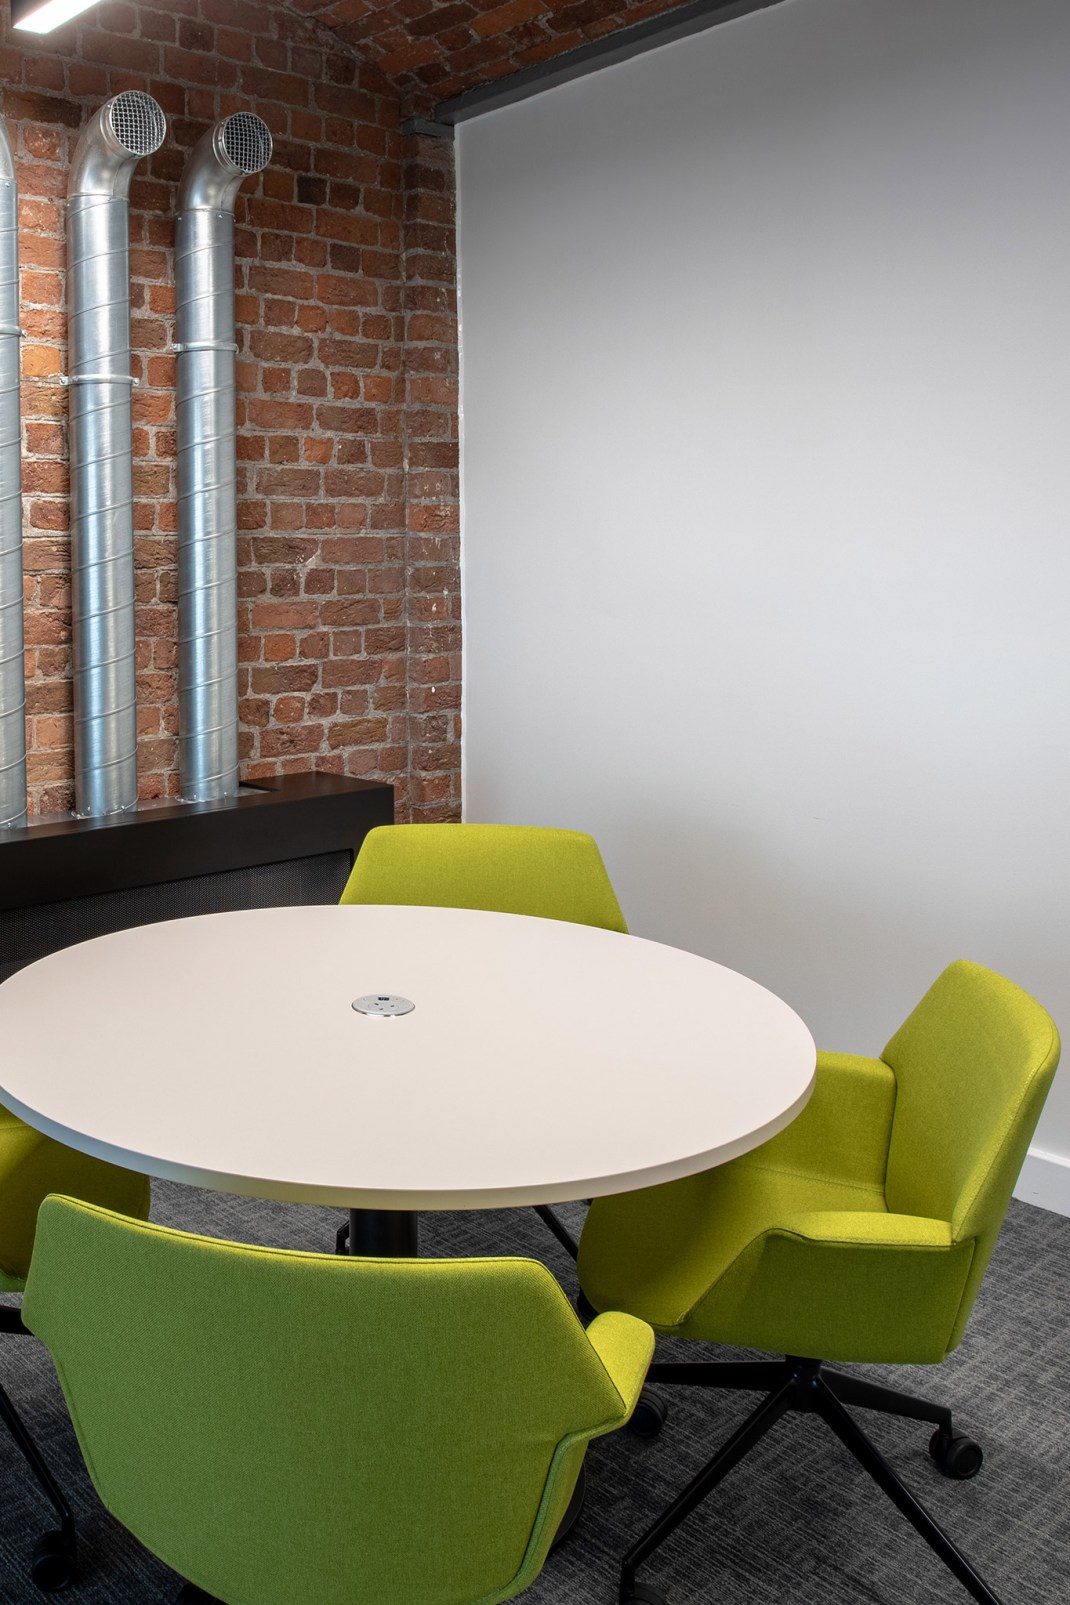 clemorton little meeting-room-in-liverpool-s1